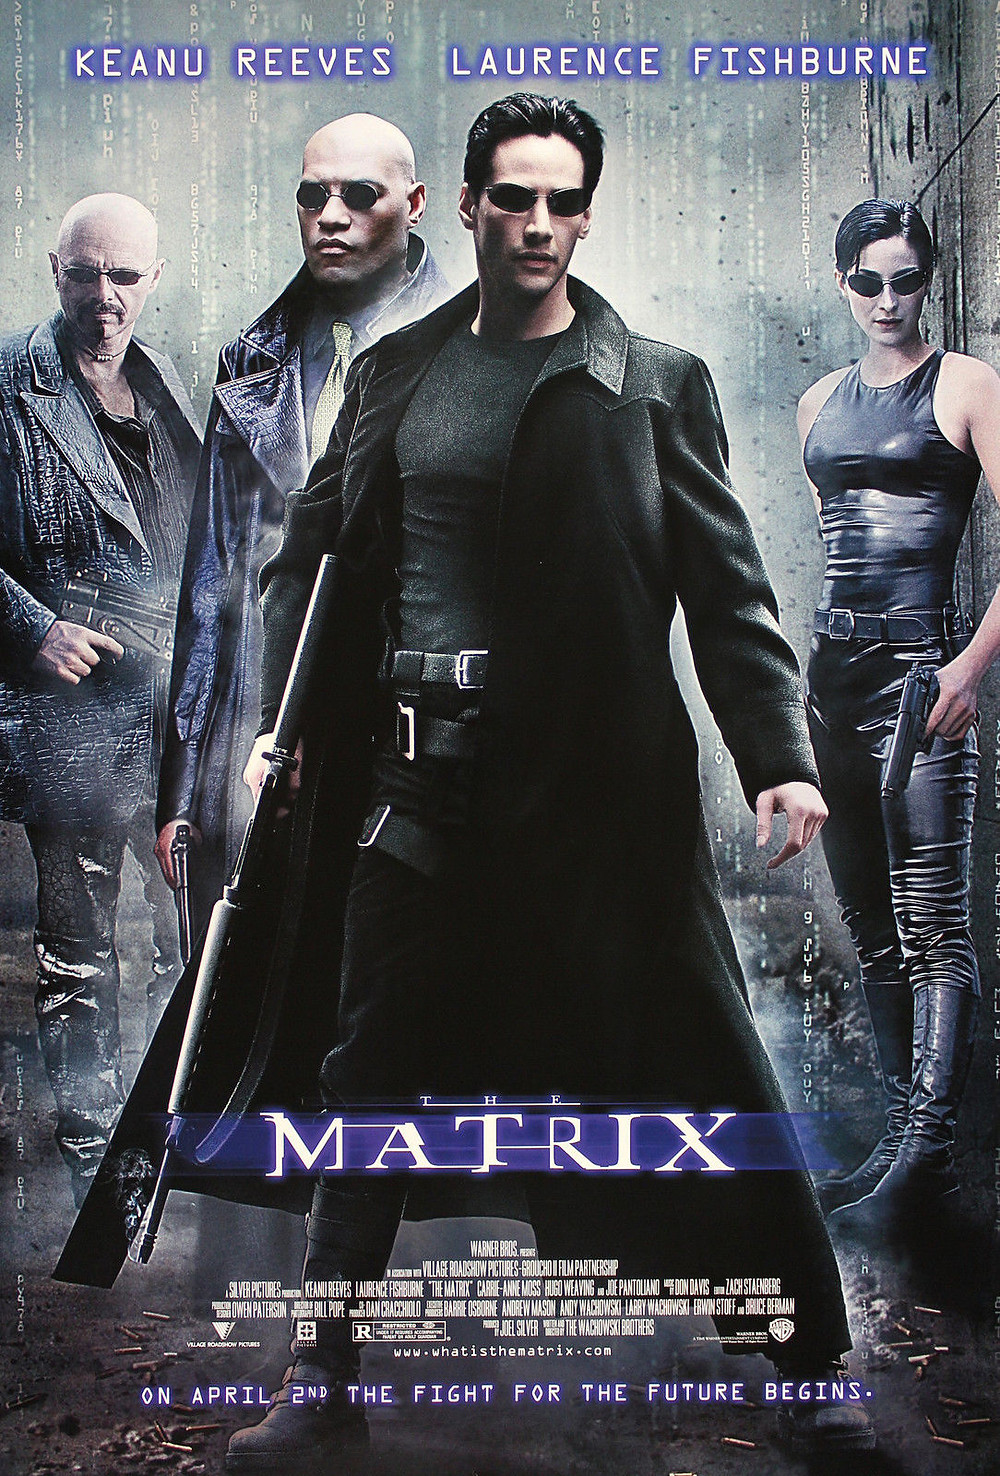 The Matrix One Sheet Poster fights